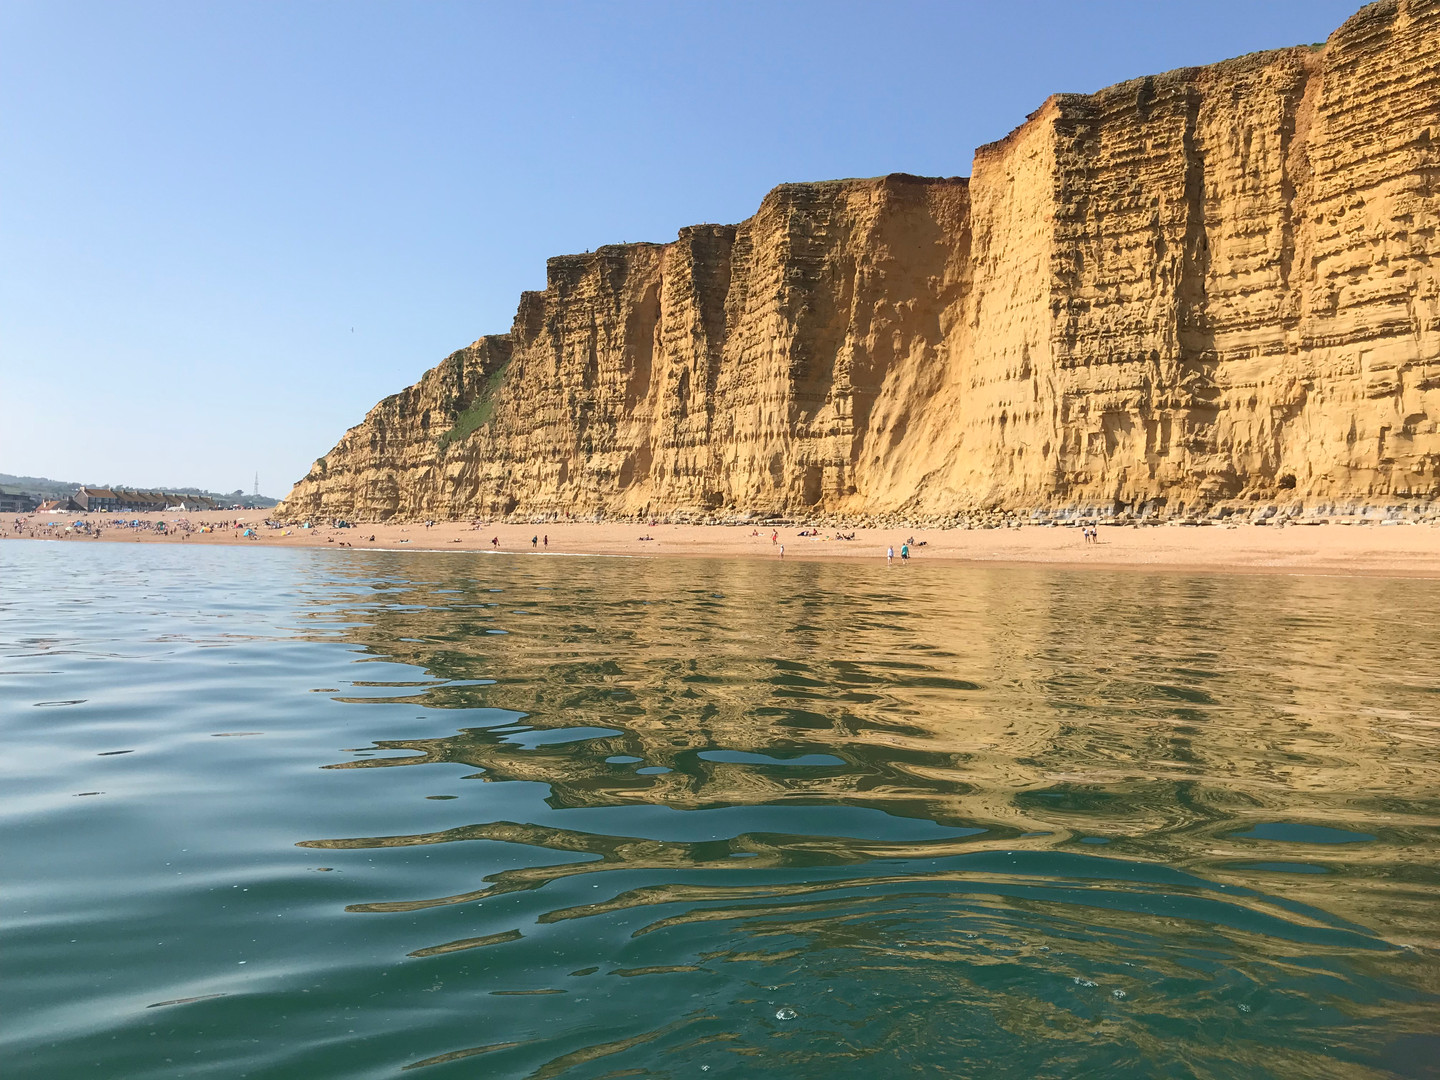 Jurassic Coast, West Bay Cliffs